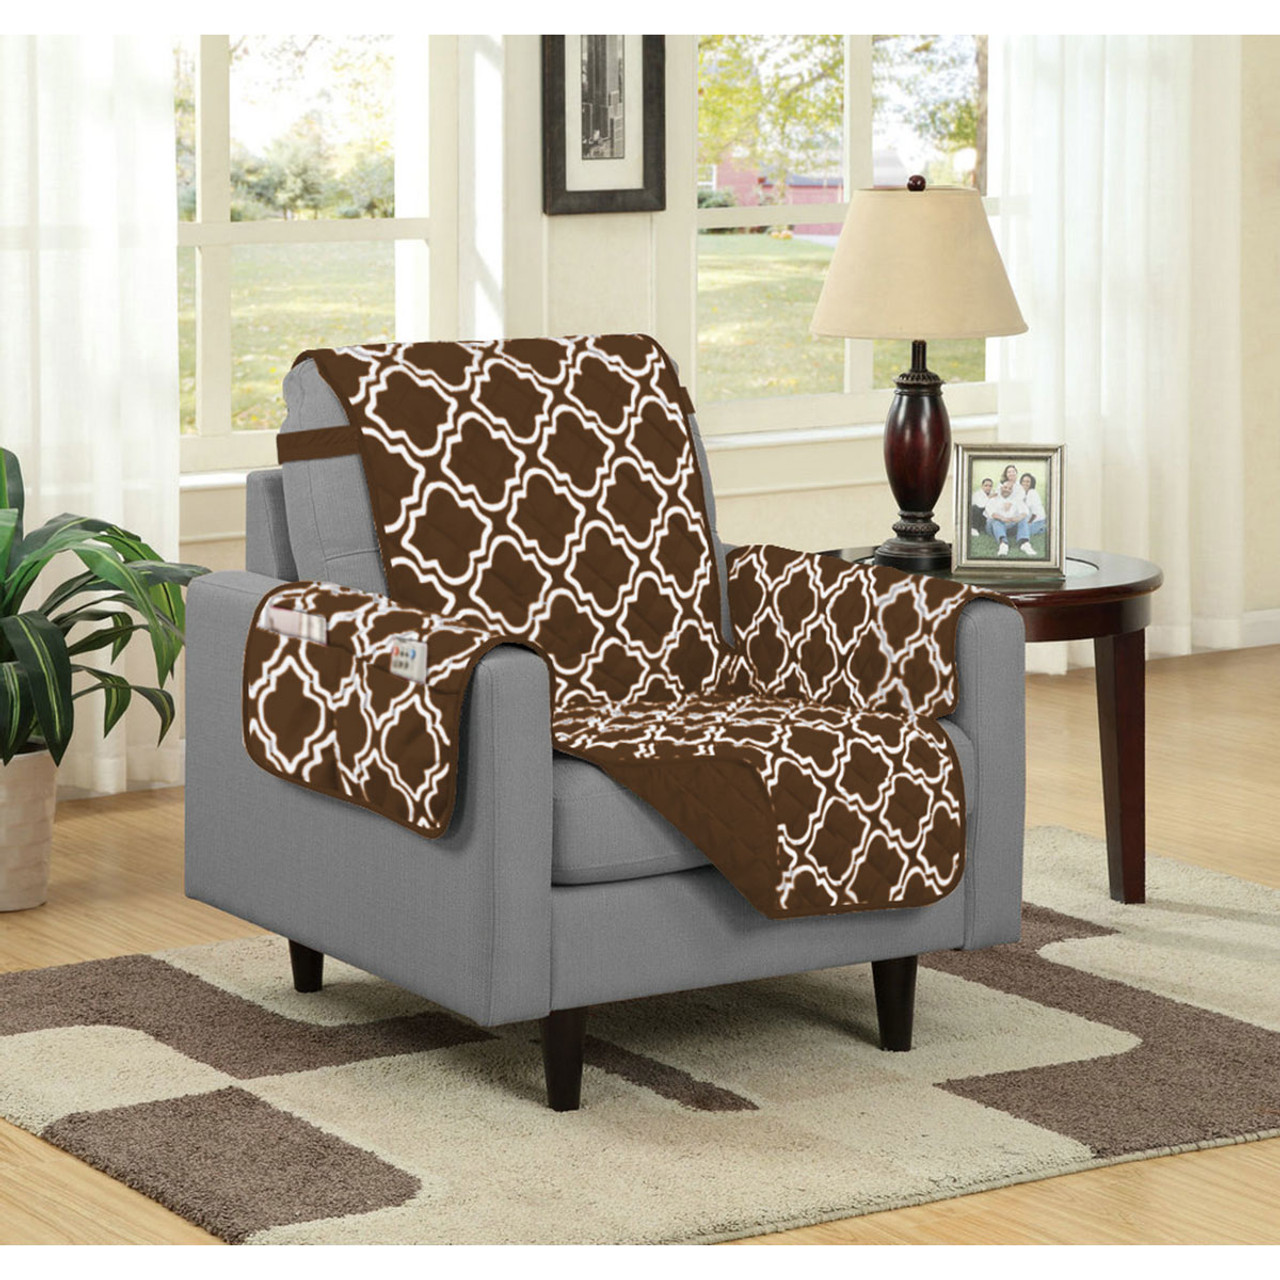 Austin Reversible Solid/Print Microfiber Furniture Protector With Strap U0026  Side Pockets Chair